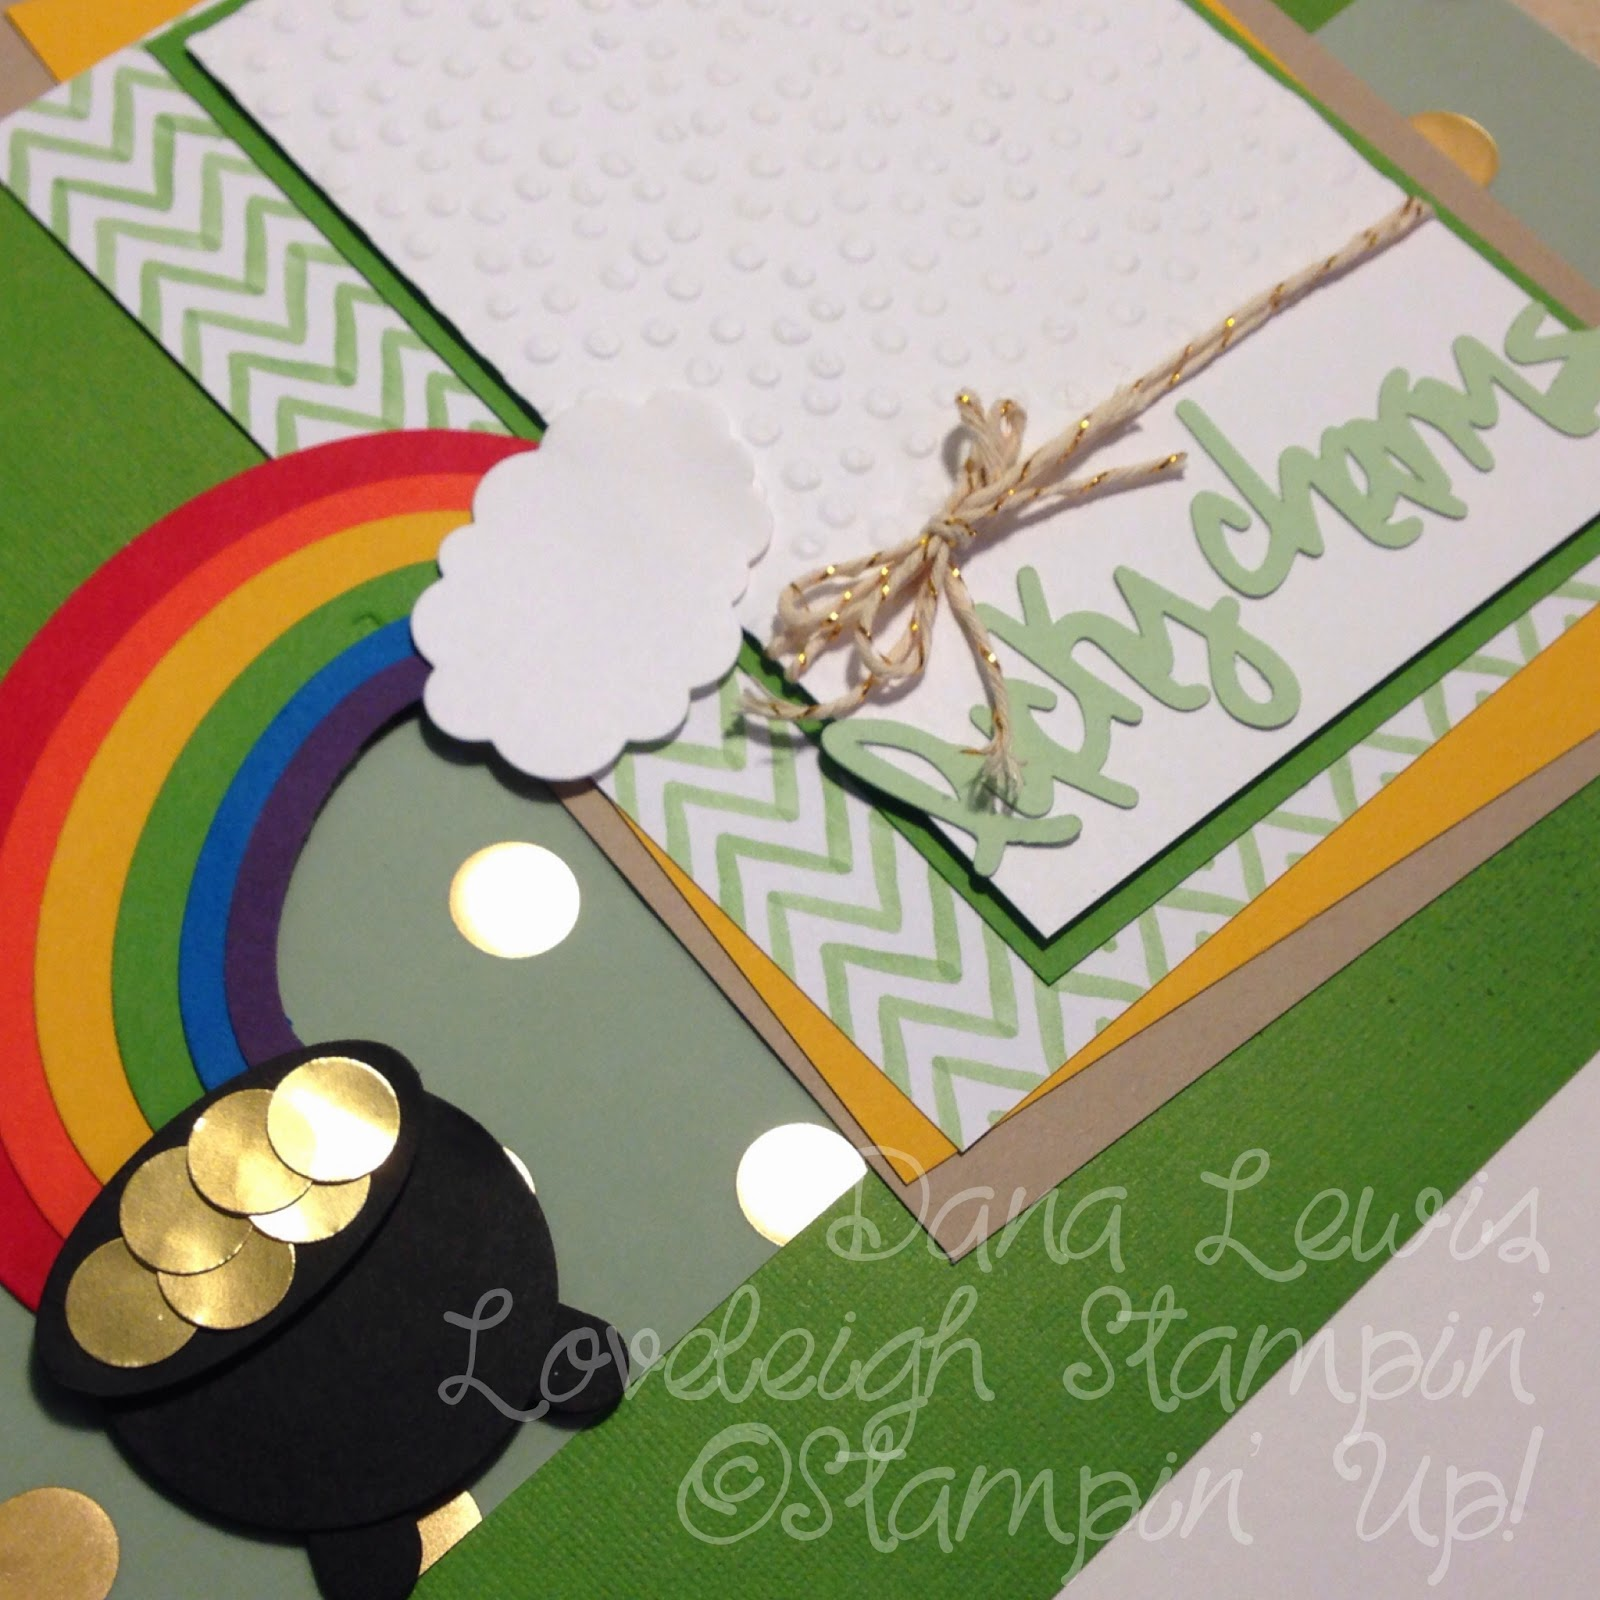 Scrapbook ideas rainbow - I Absolutely Love How This Page Turned Out We A Single Layout The Left Page At My Scrapbook Class But I Couldn T Help But Add A 2nd Page For Myself